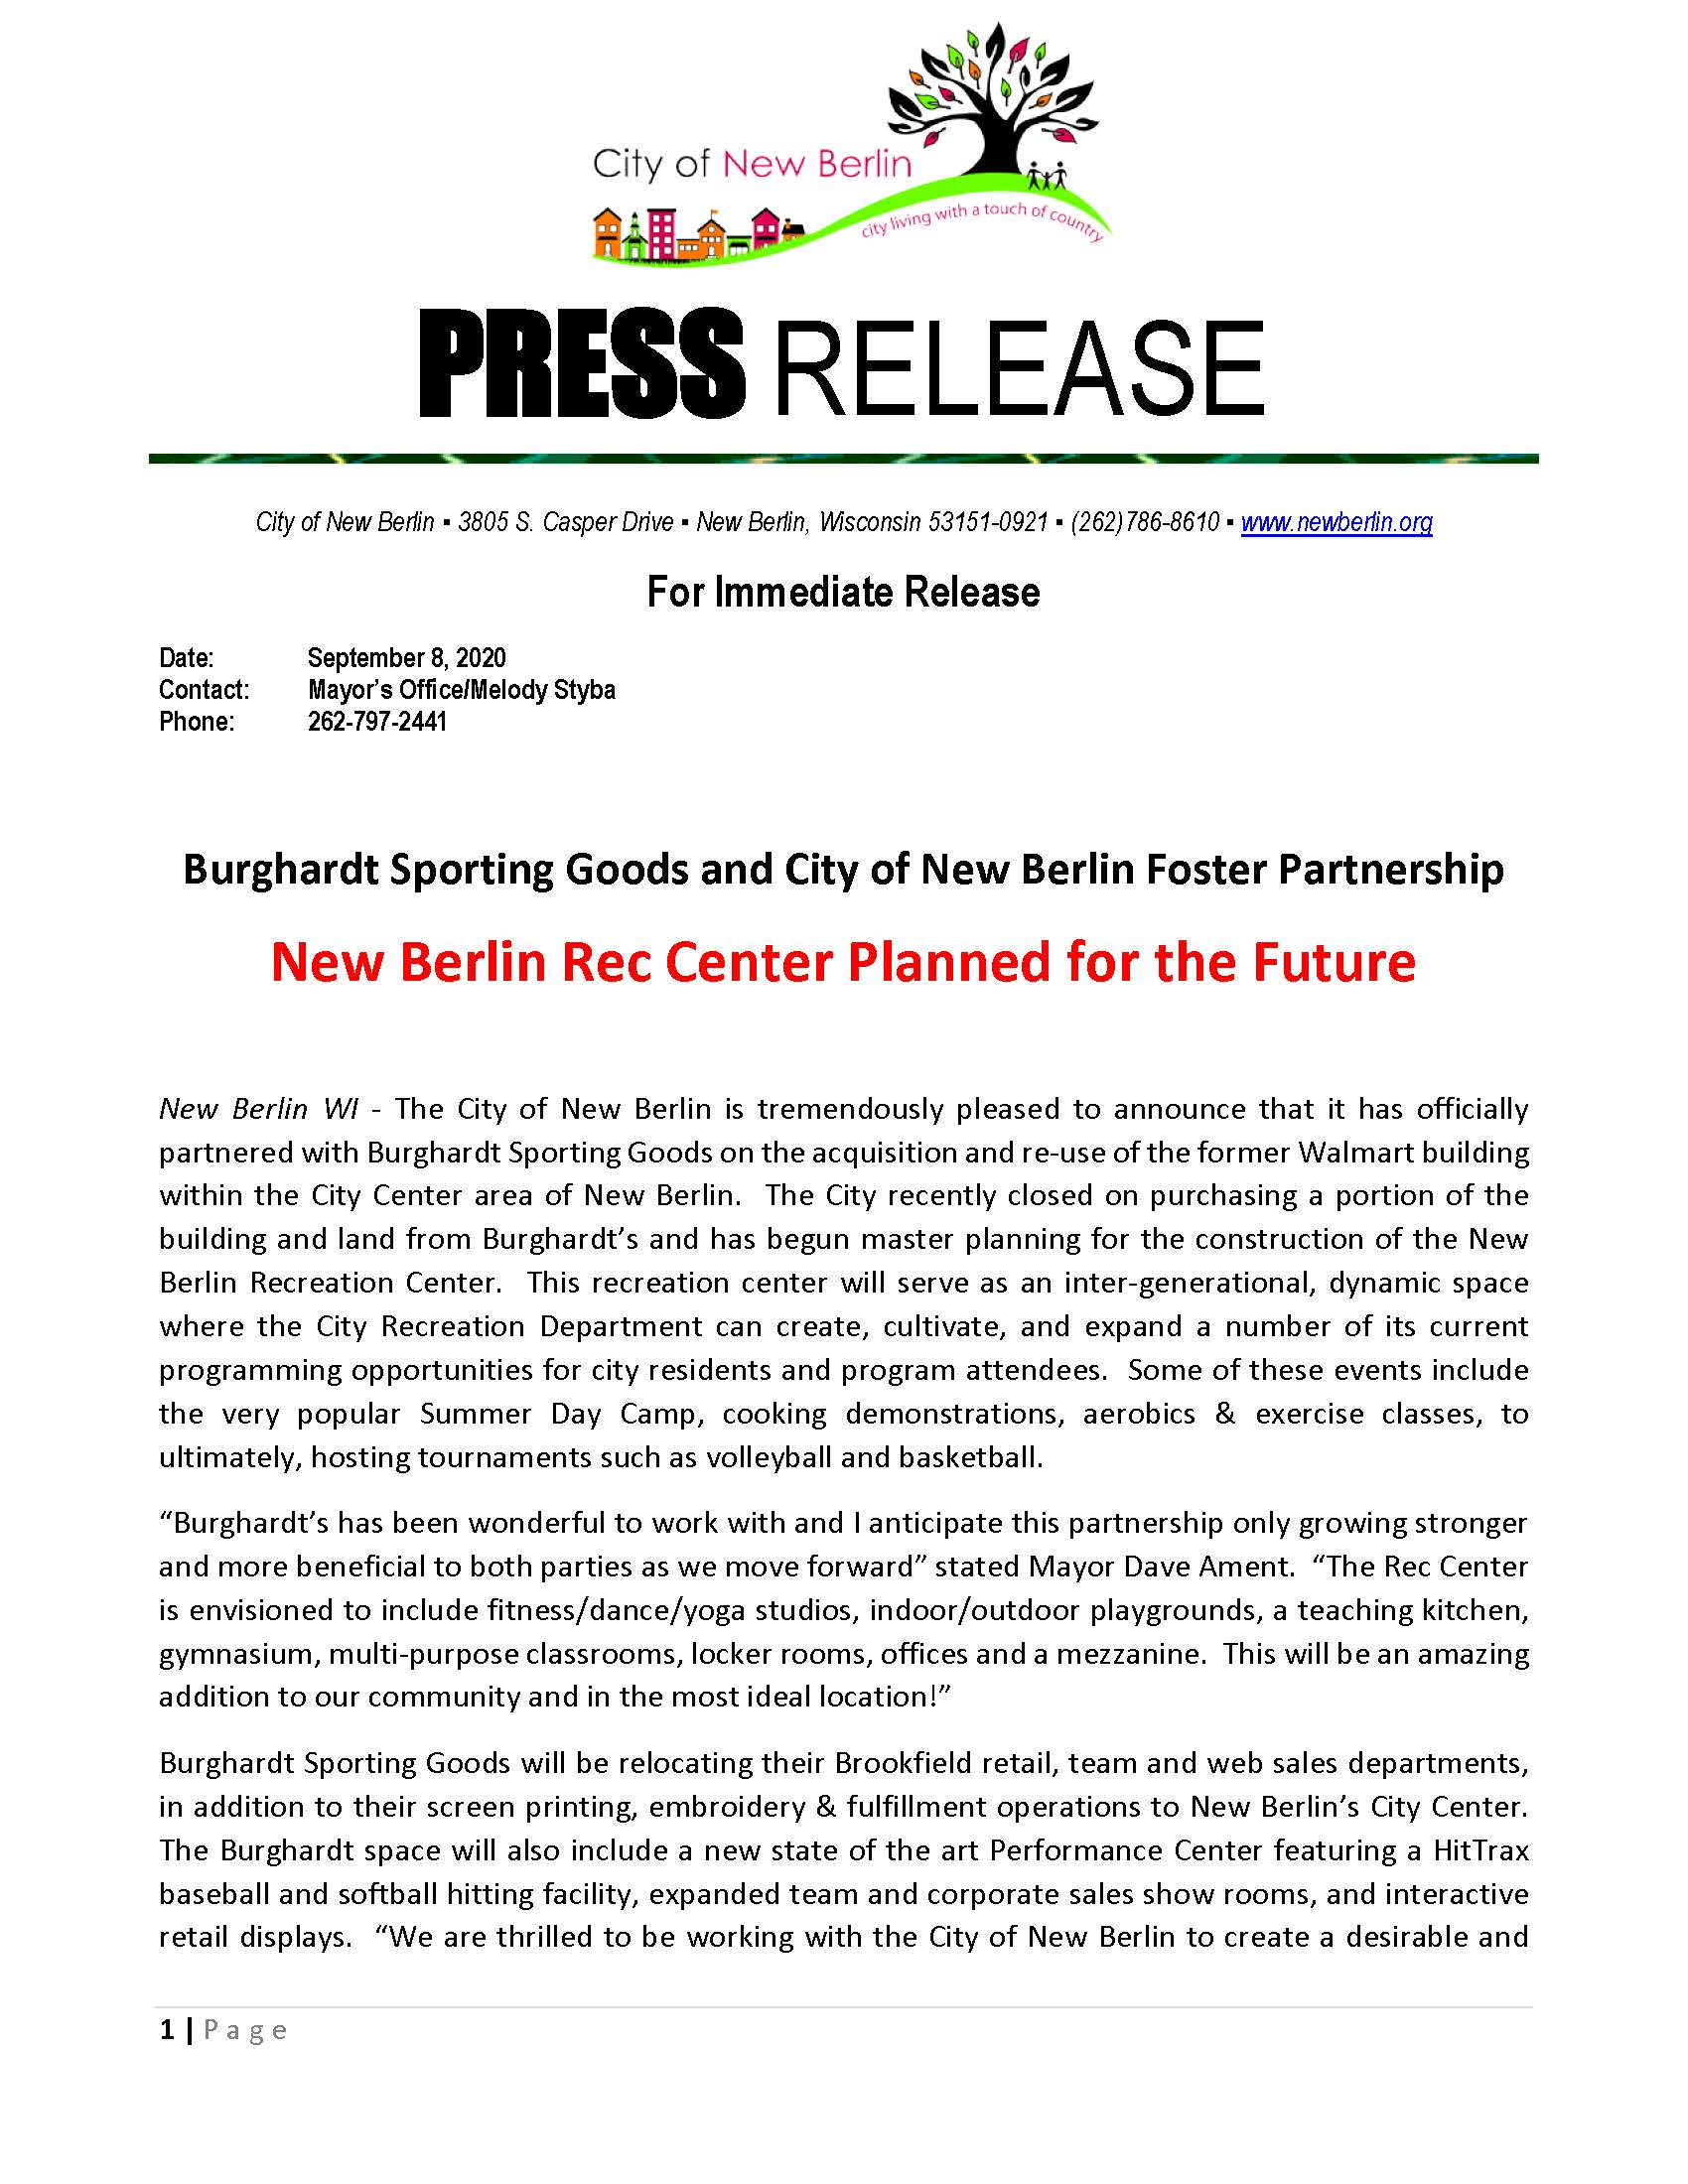 PRESS RELEASE - Burghardt  City Partnership_Page_1